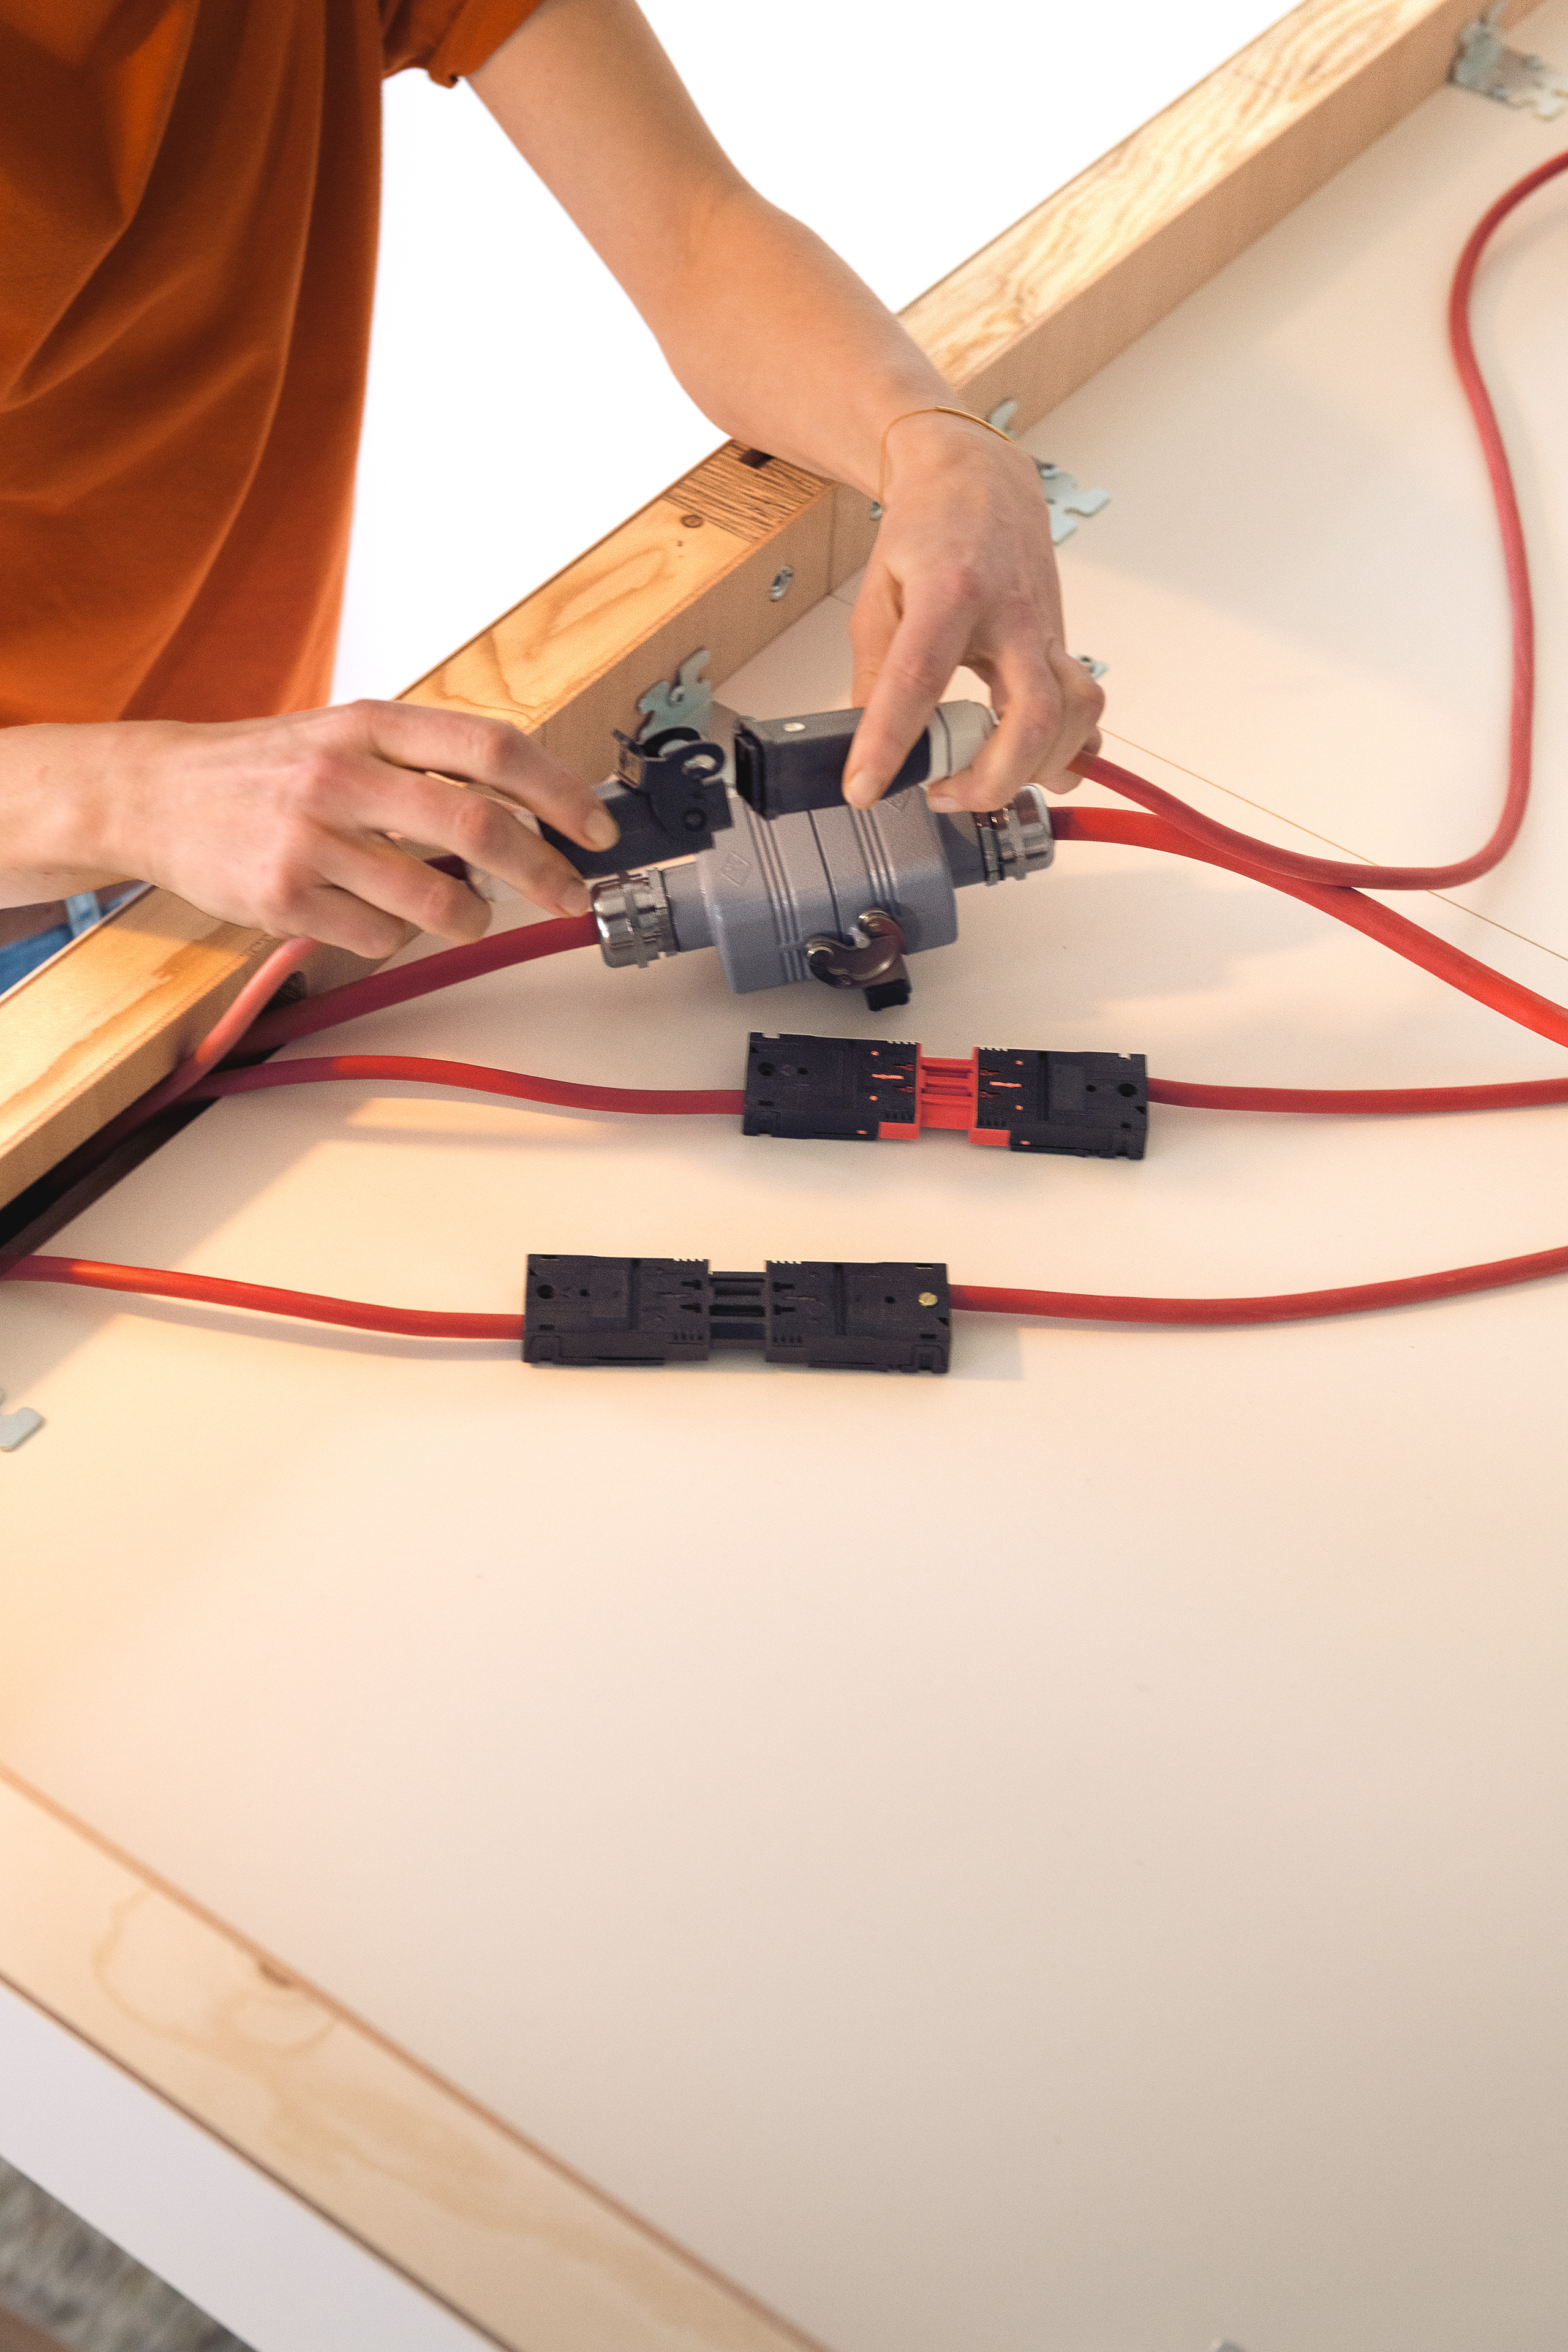 Klafs Sauna Easy The Diy Laminated Electrical Board Usually Fitted With Electronic Assembly Step 6